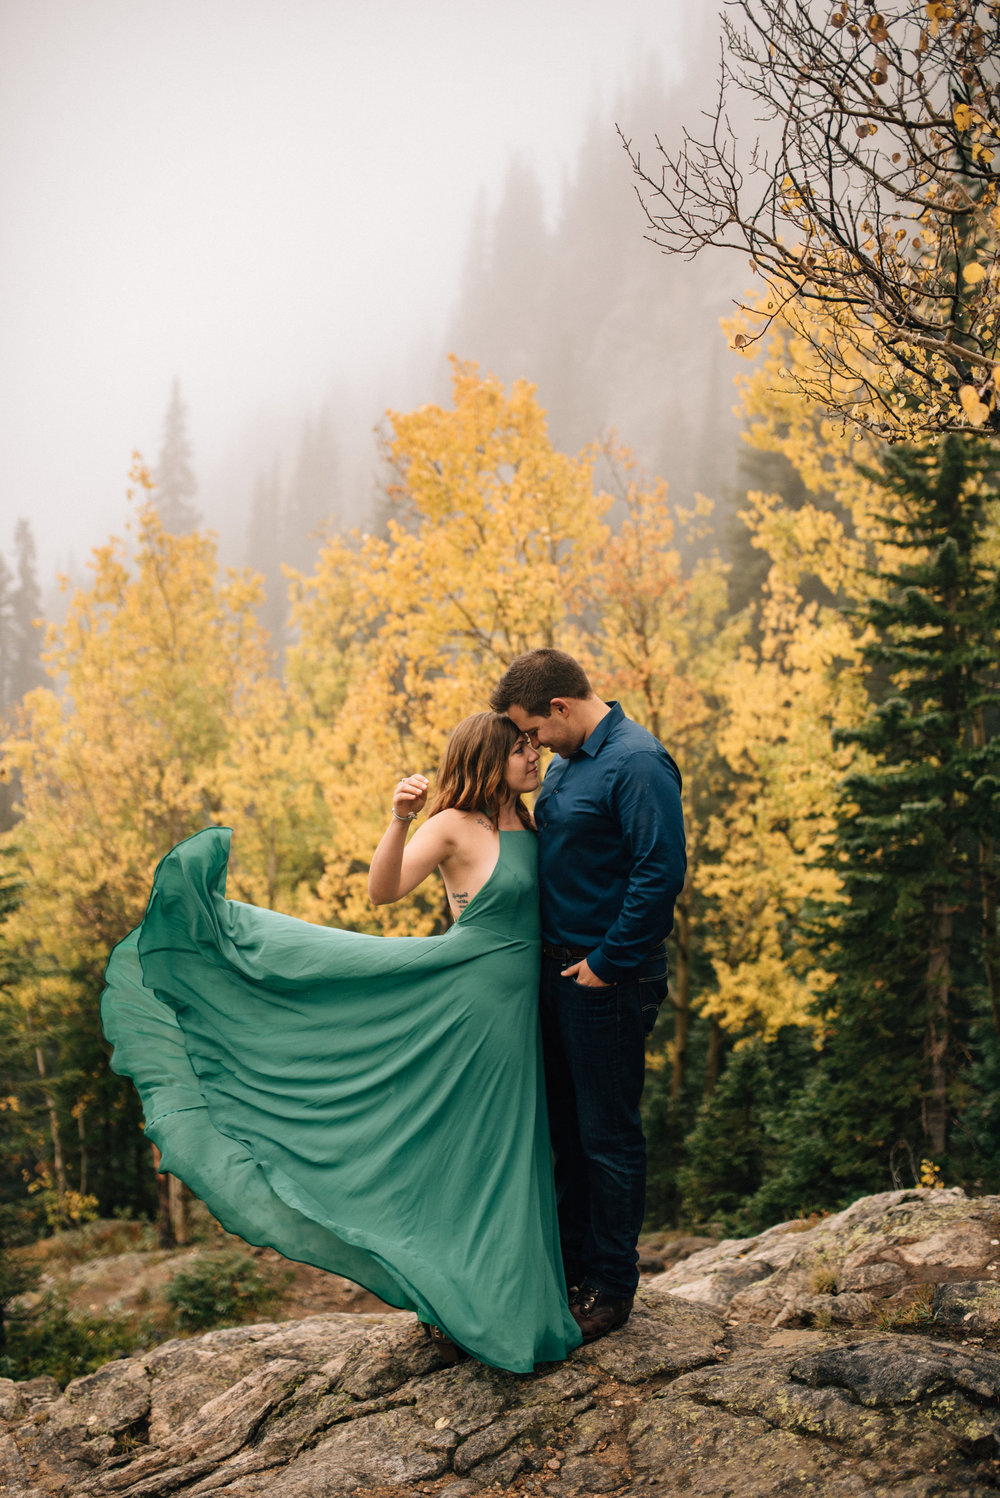 Breckenridge, Colorado engagement session.